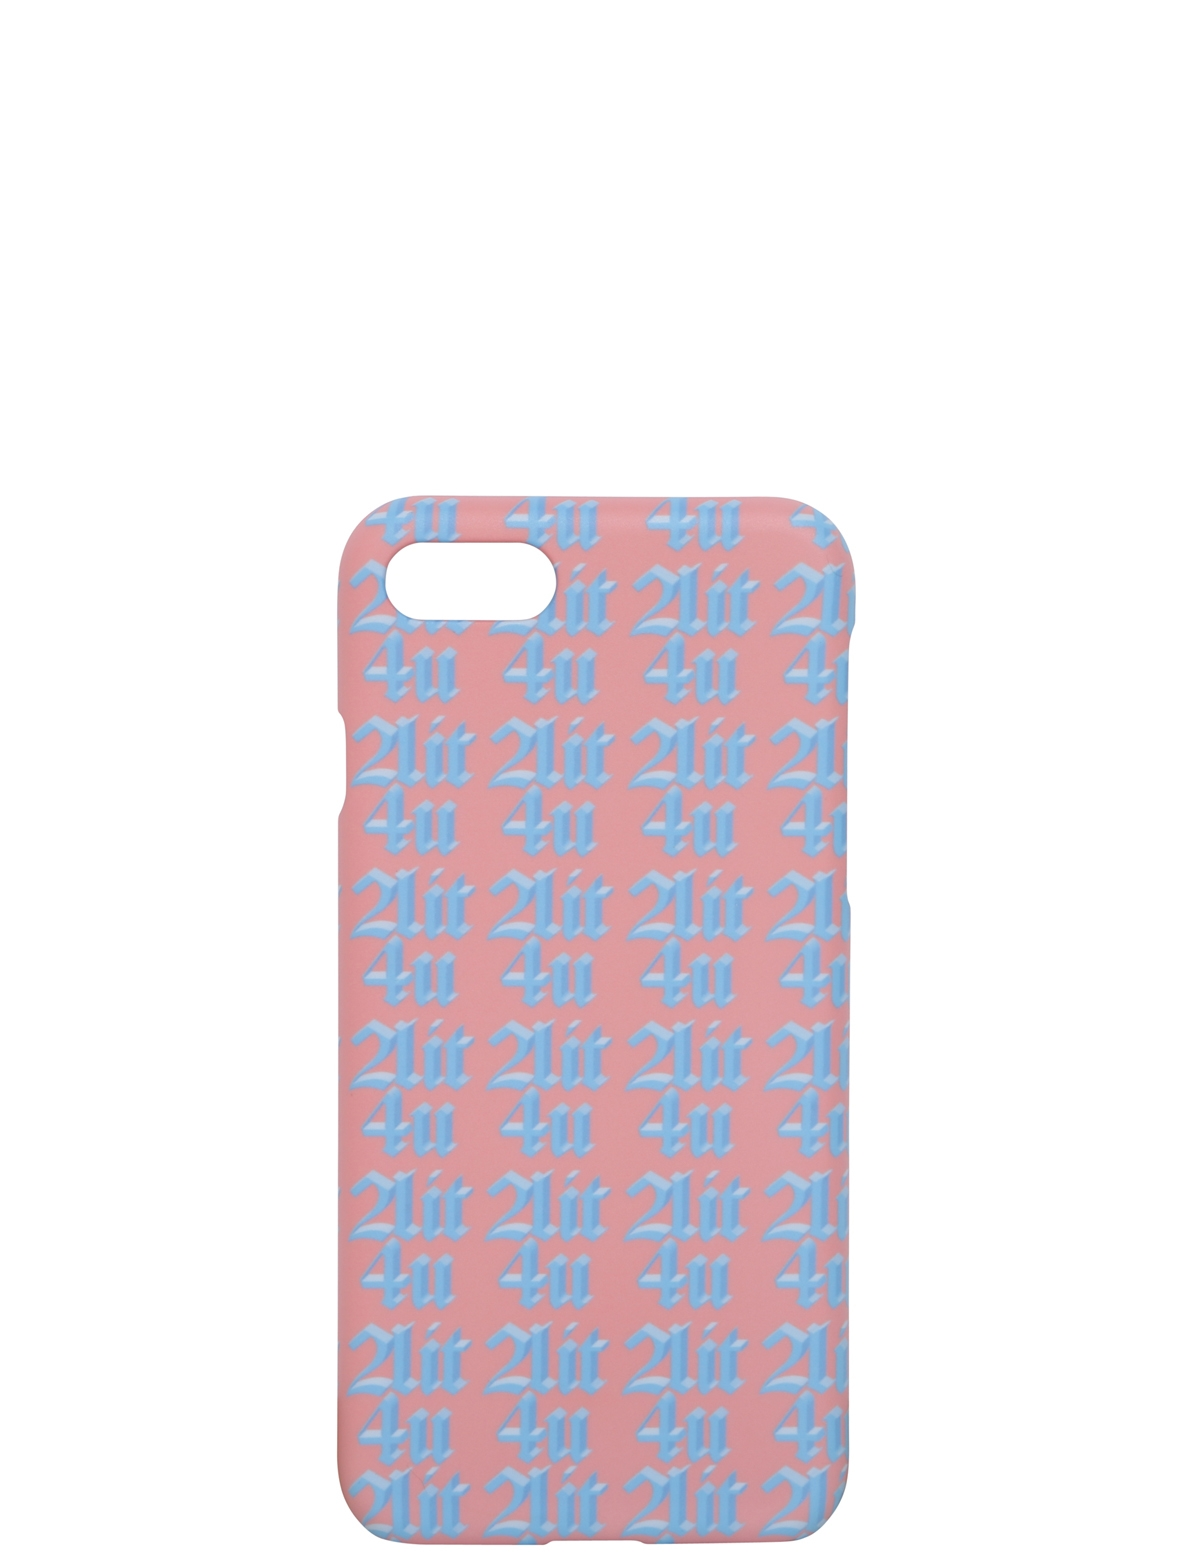 Image of 2LIT4U Slogan Iphone 6 & 7 Case In Peach